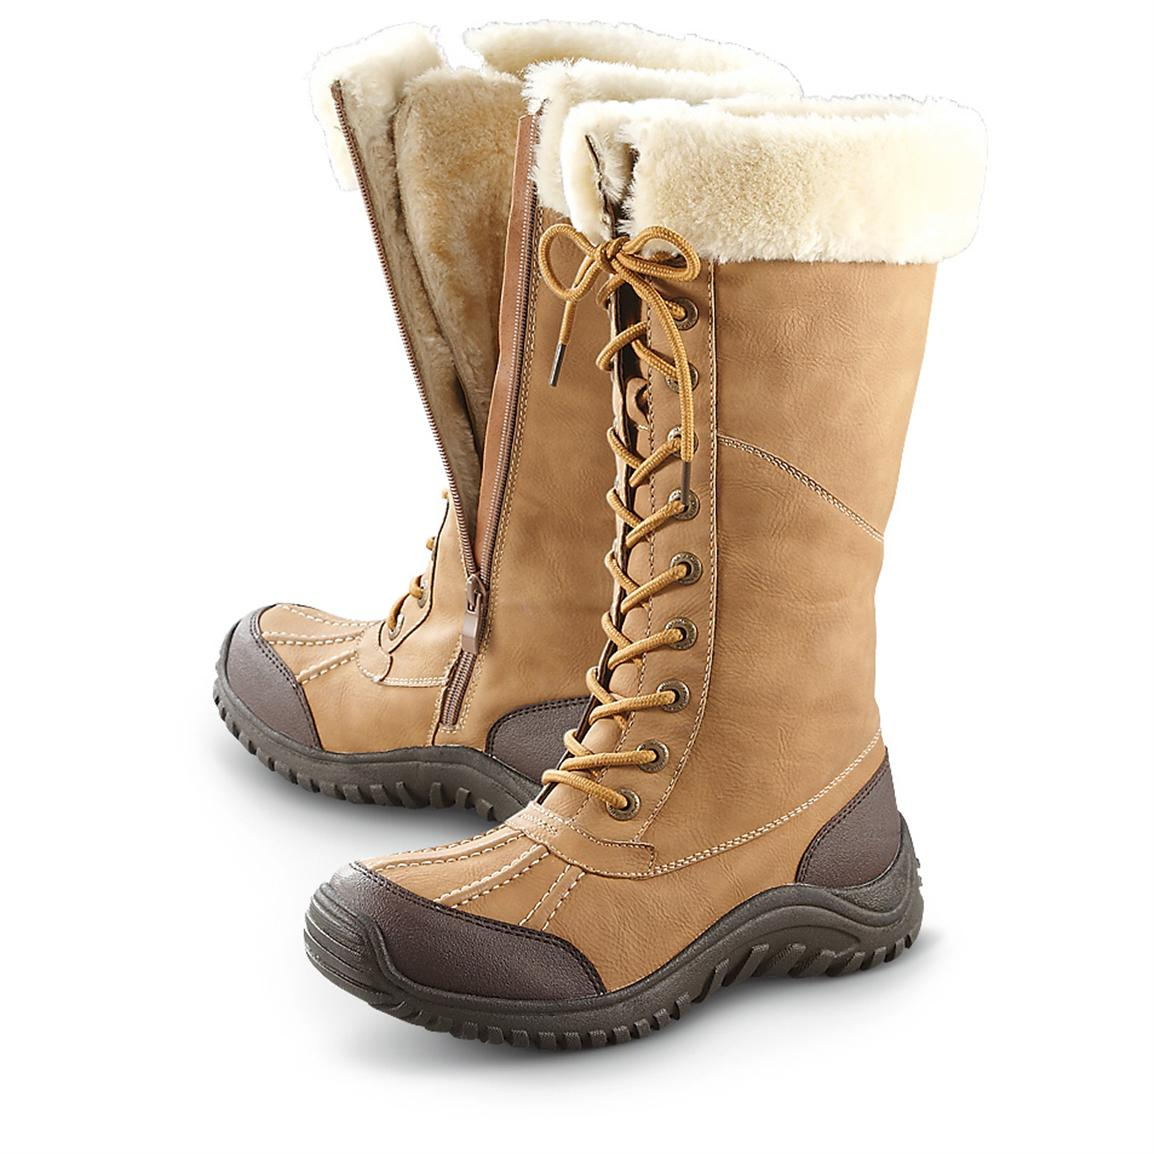 Awesome Clothing Shoes Accessories Gt Women39s Shoes Gt Boots